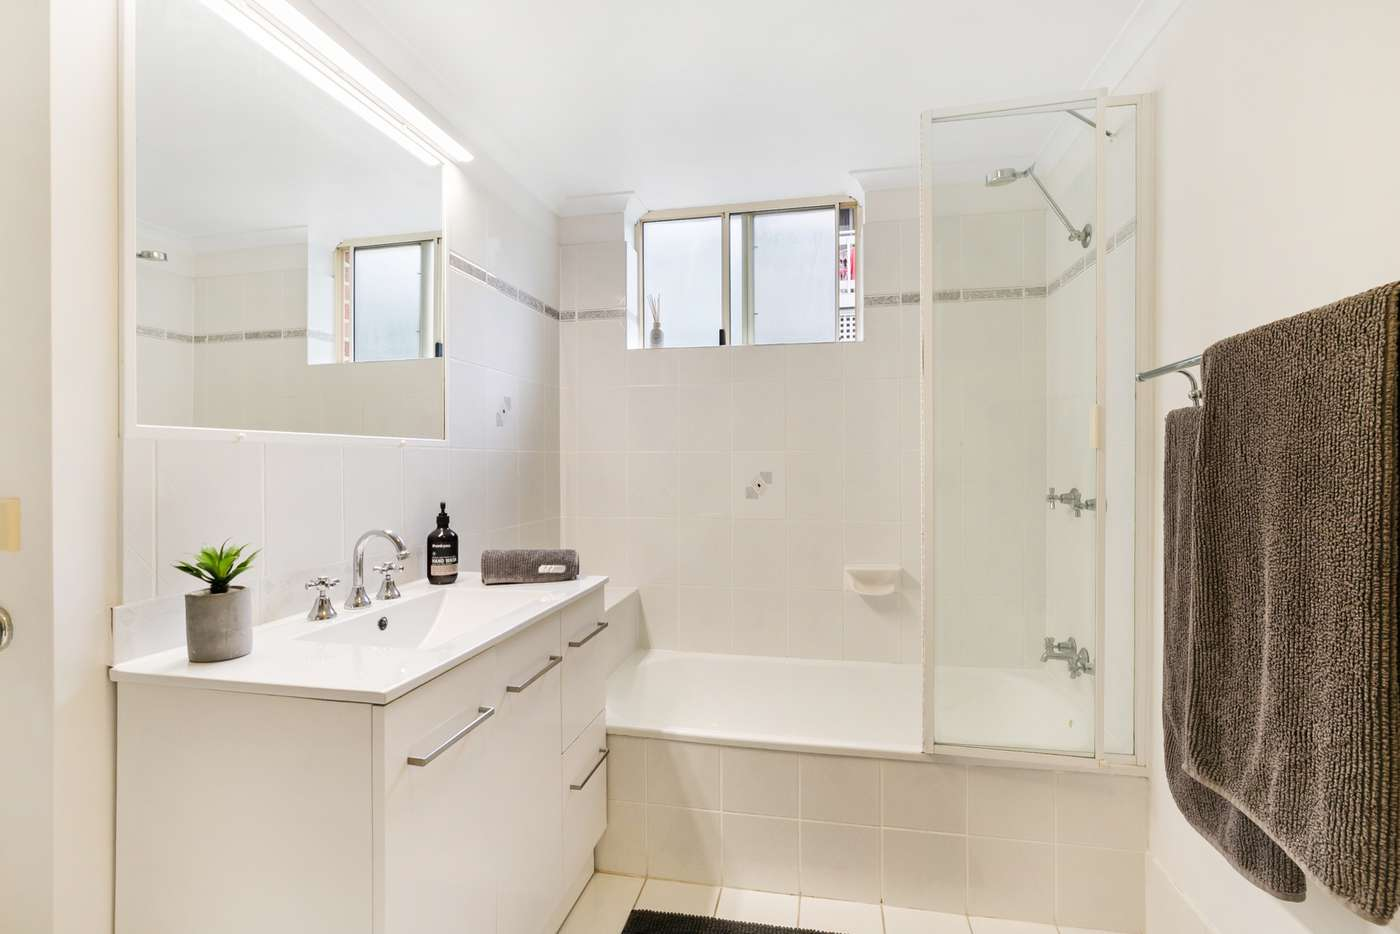 Sixth view of Homely unit listing, 3/49 Durham Street, St Lucia QLD 4067